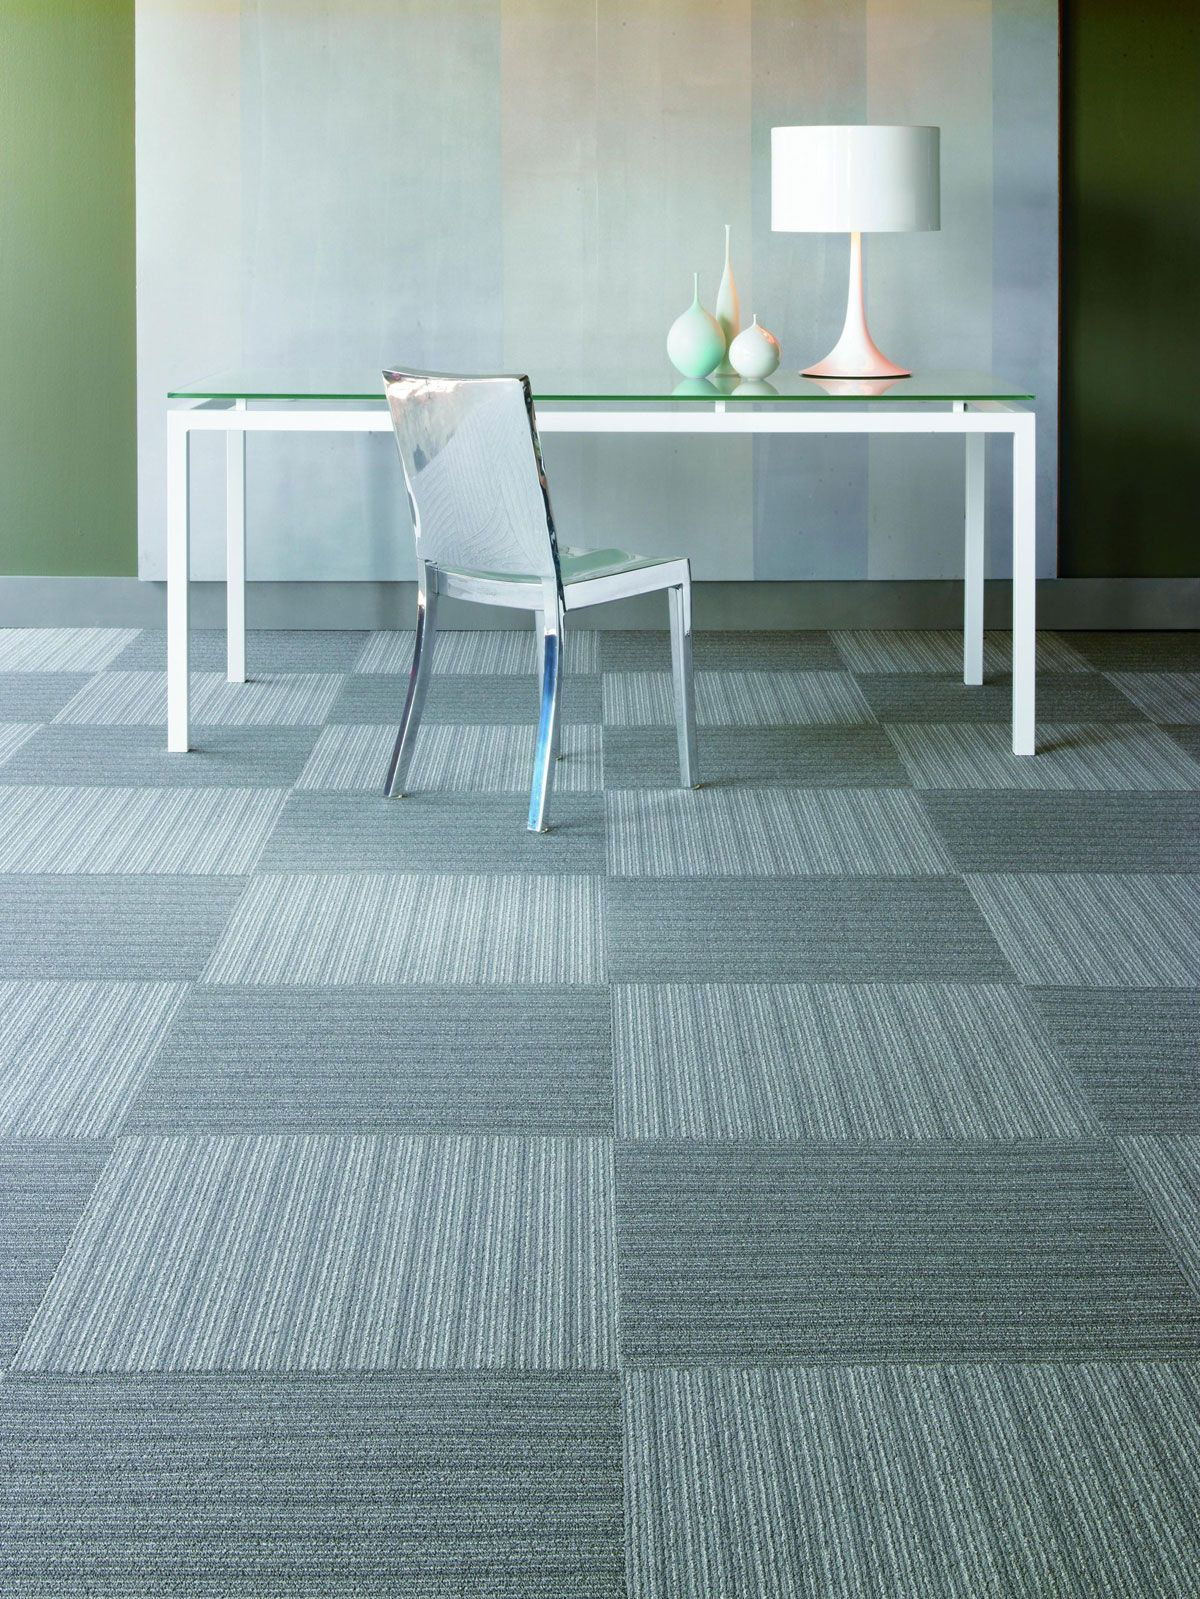 Carpet tile installation gallery focus floors carpet tiles carpet tile installation gallery focus floors carpet tilessquares blog dailygadgetfo Image collections